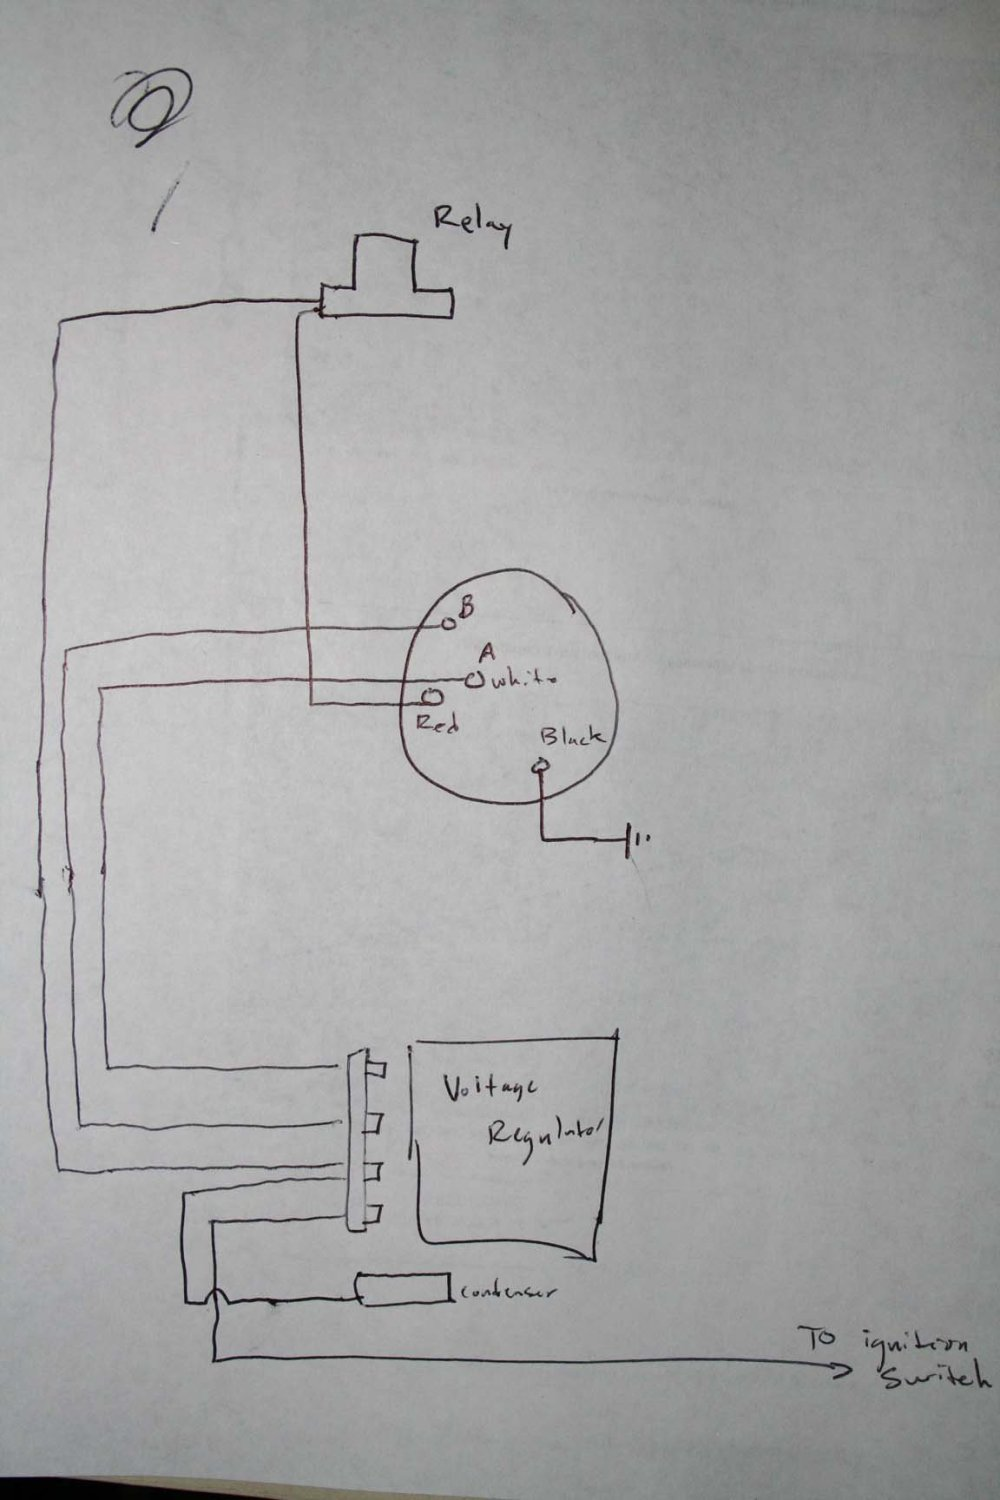 medium resolution of echlin voltage regulator wiring diagram wiring libraryechlin voltage regulator wiring diagram